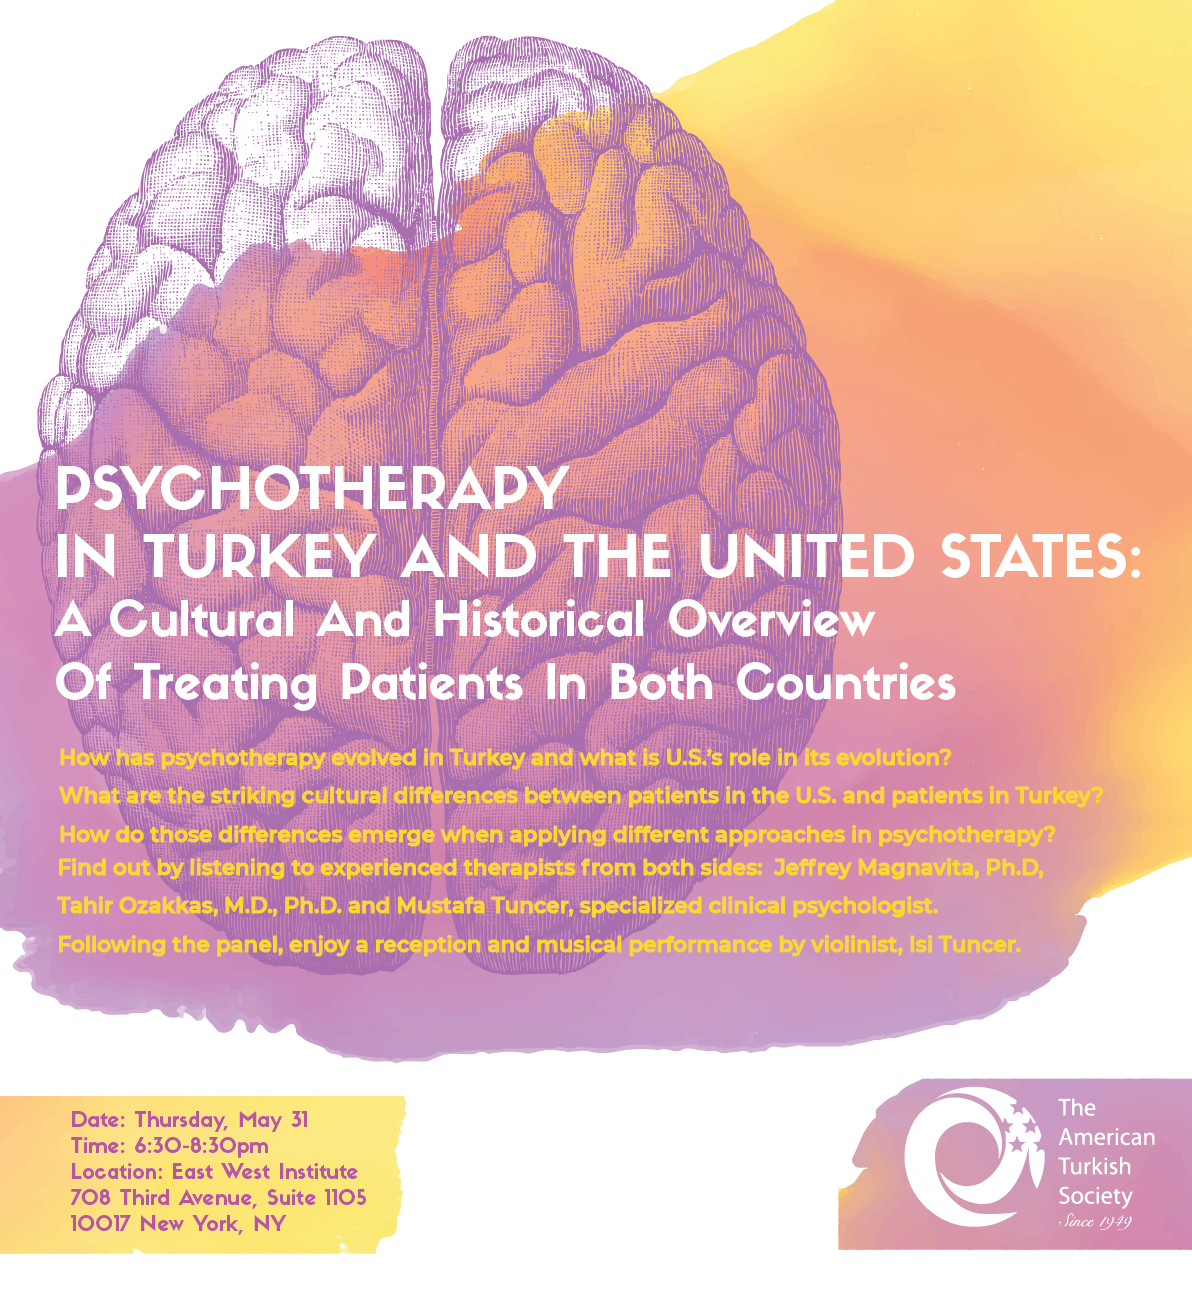 Psychotherapy in Turkey and The United States